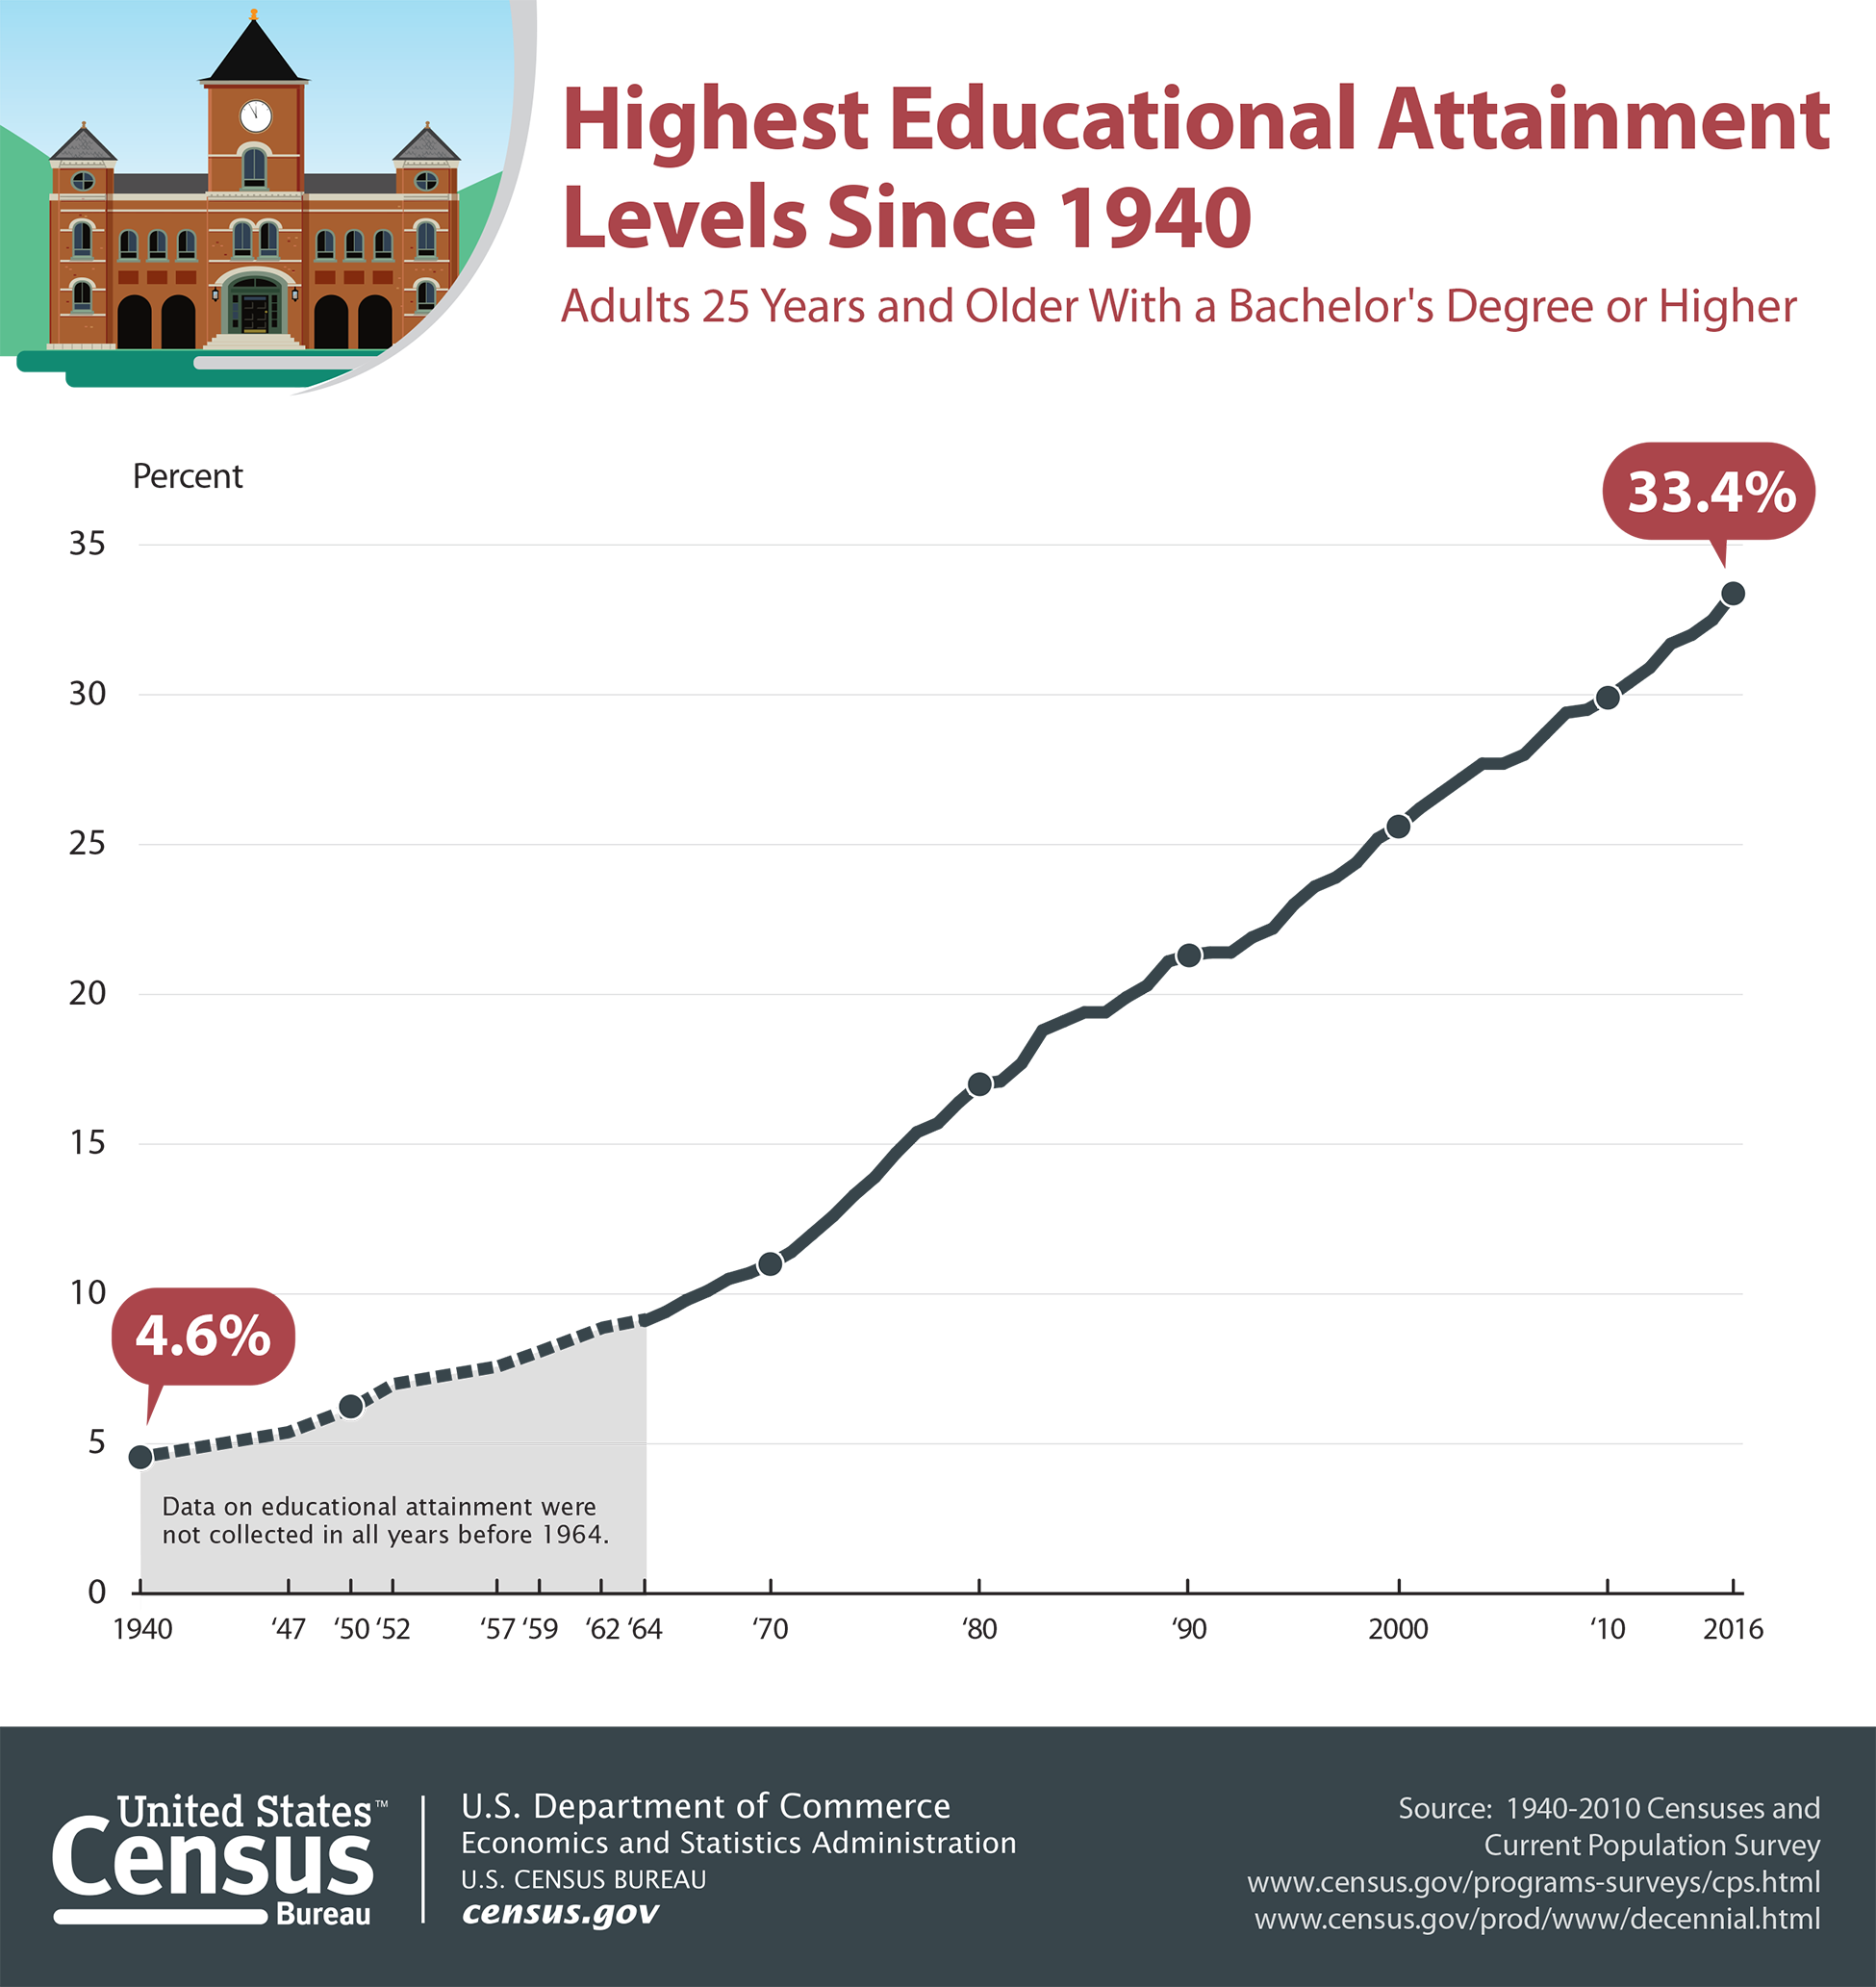 An analysis chart released by the United States Census Bureau shows a line graph plotting the highest educational attainment levels since 1940.